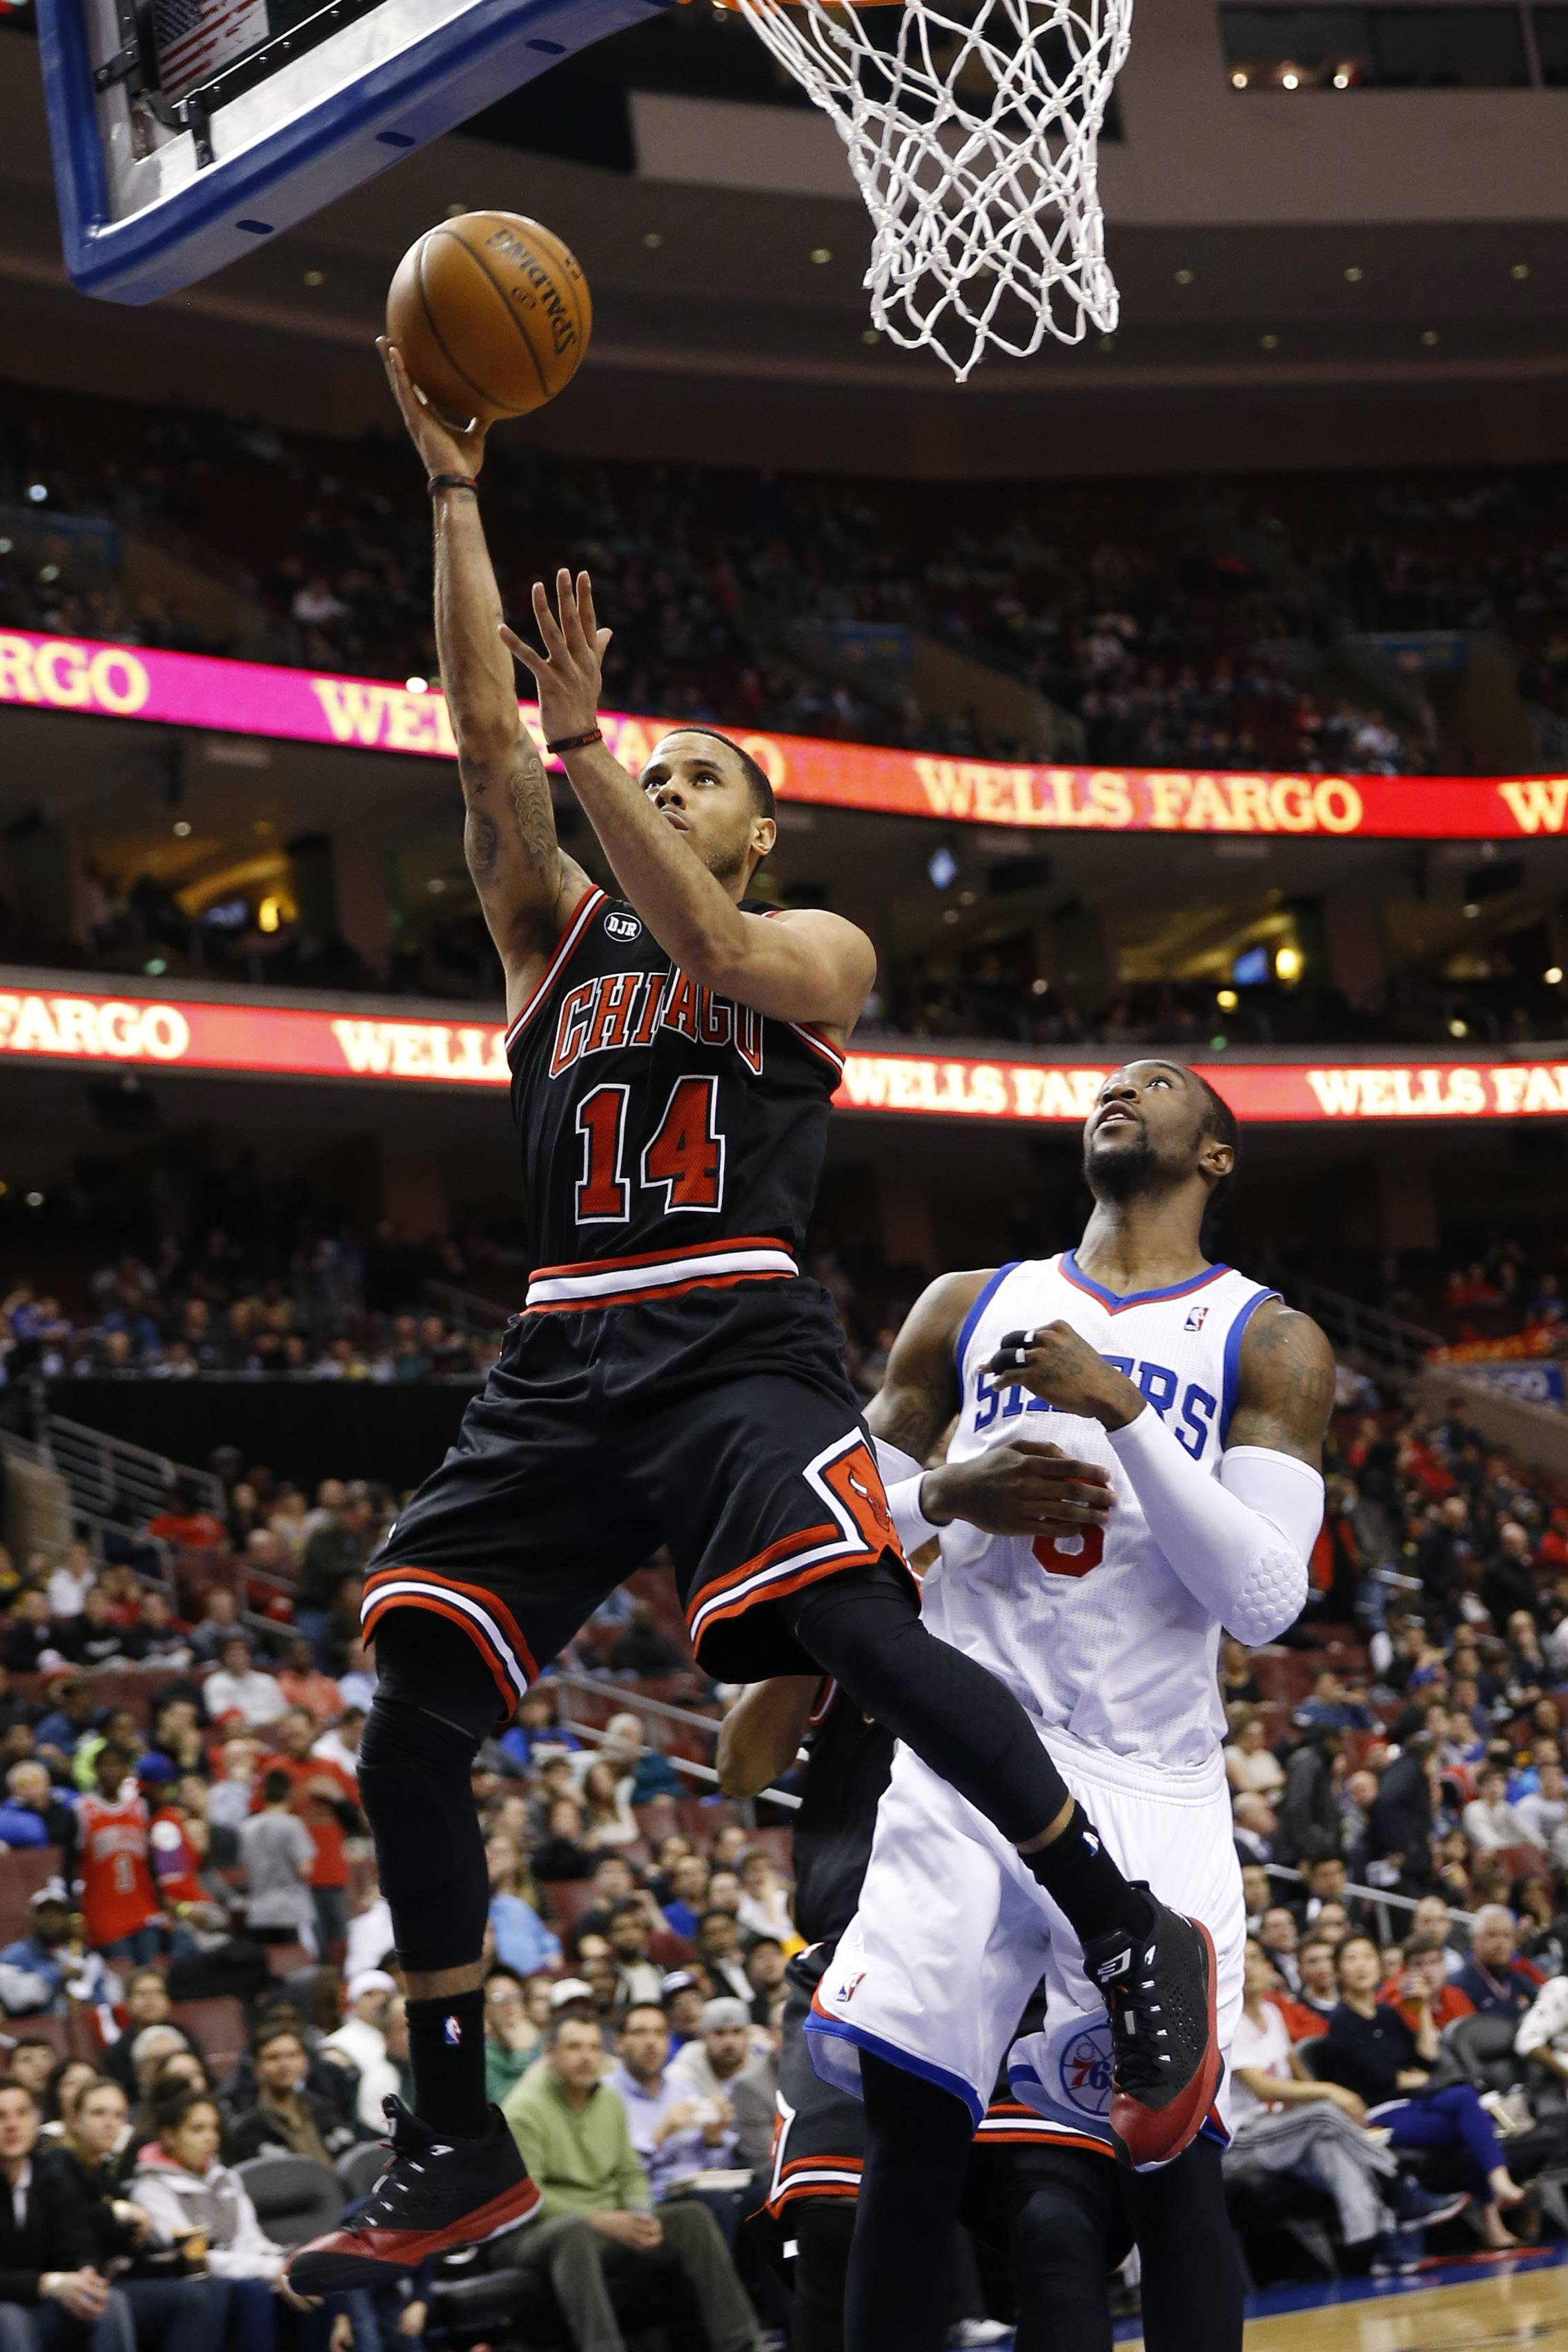 Bulls guard D.J. Augustin goes up for a shot in front of the 76ers' Tony Wroten on Wednesday night. Augustin led the Bulls with 20 points.